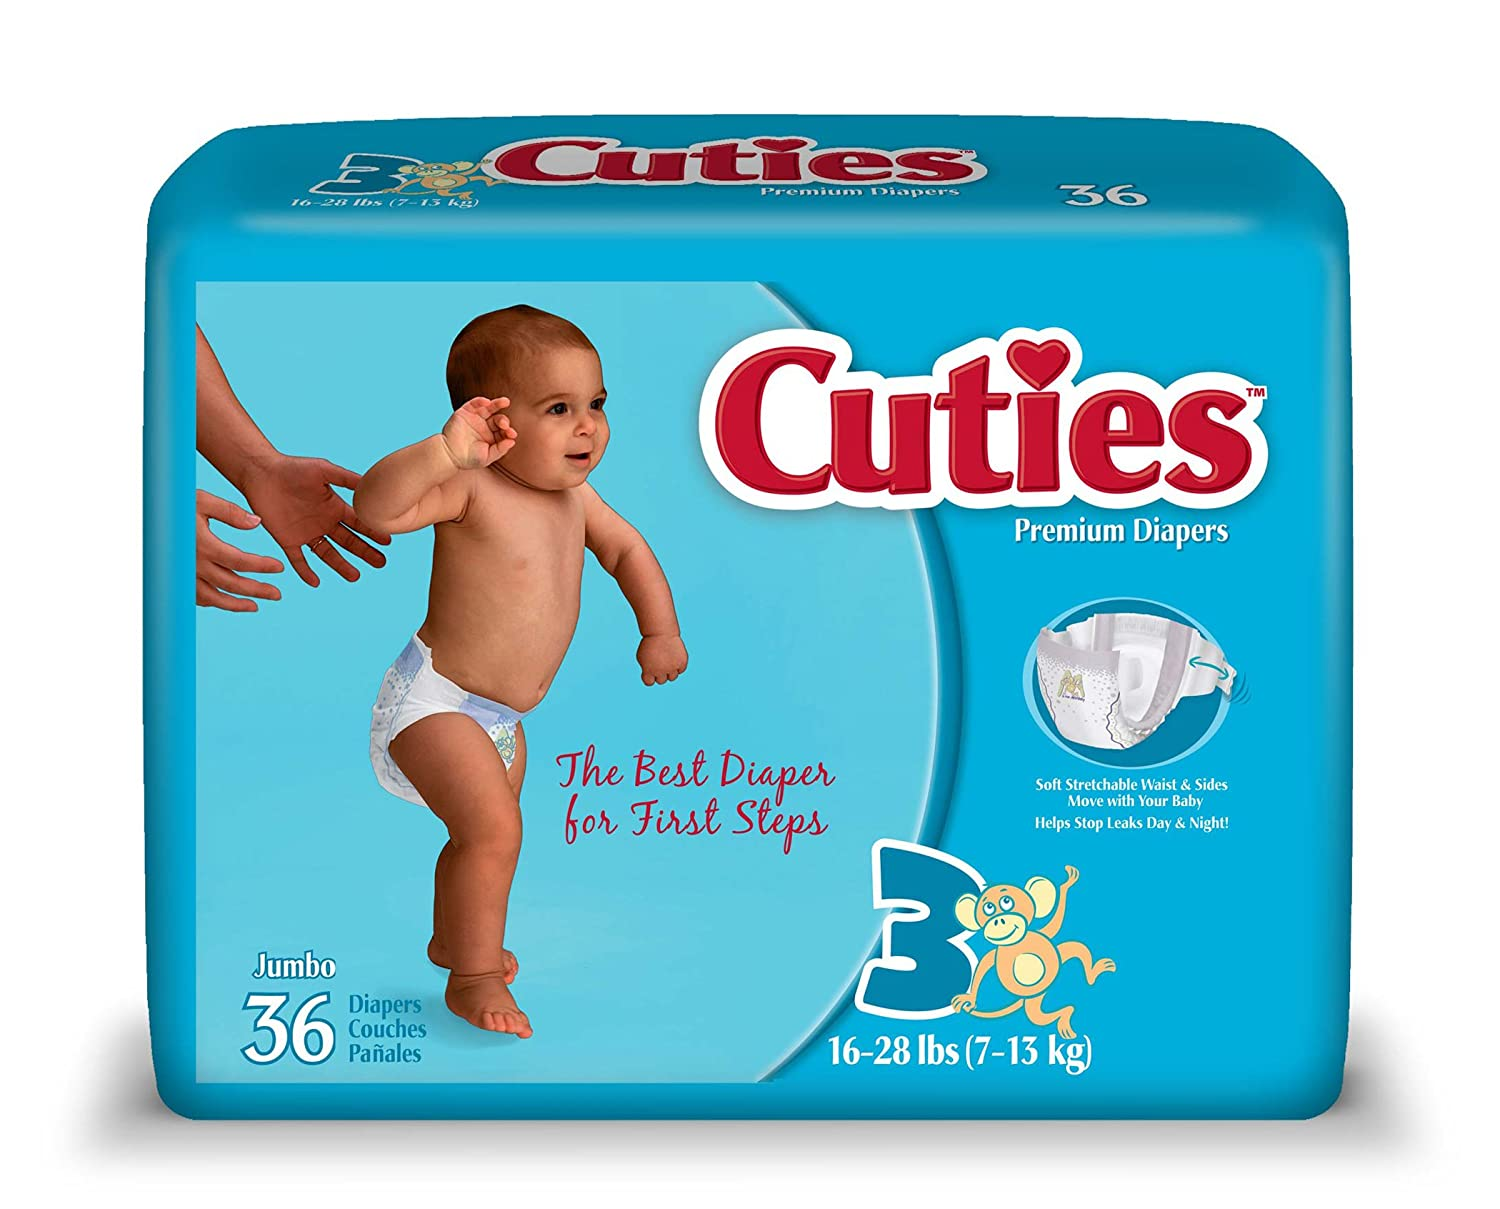 Amazon.com: Cuties Jumbo Pack Diaper, Size 3, 144 Count: Health & Personal Care